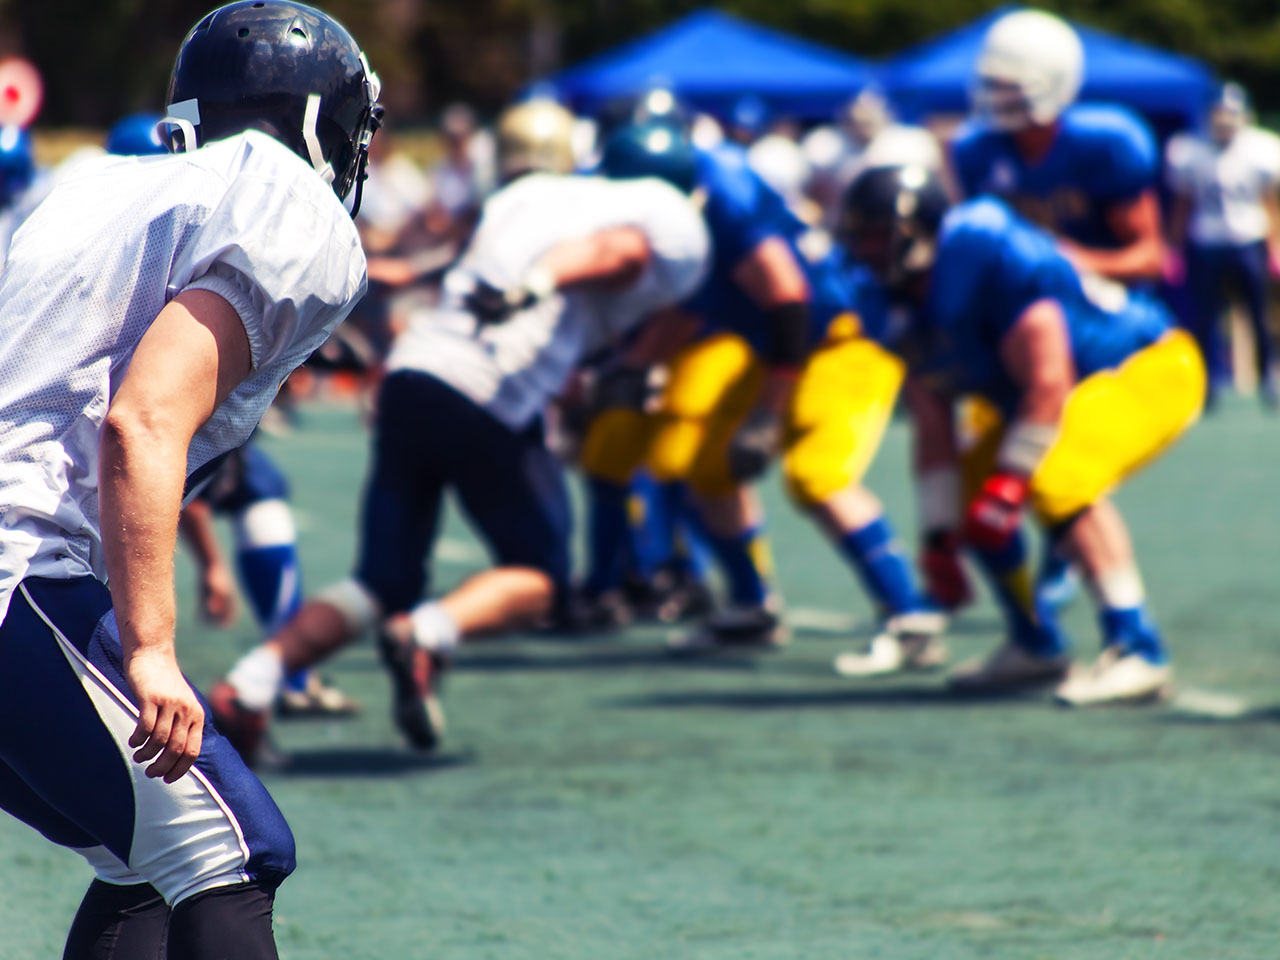 The Rules of going to an American Football Game